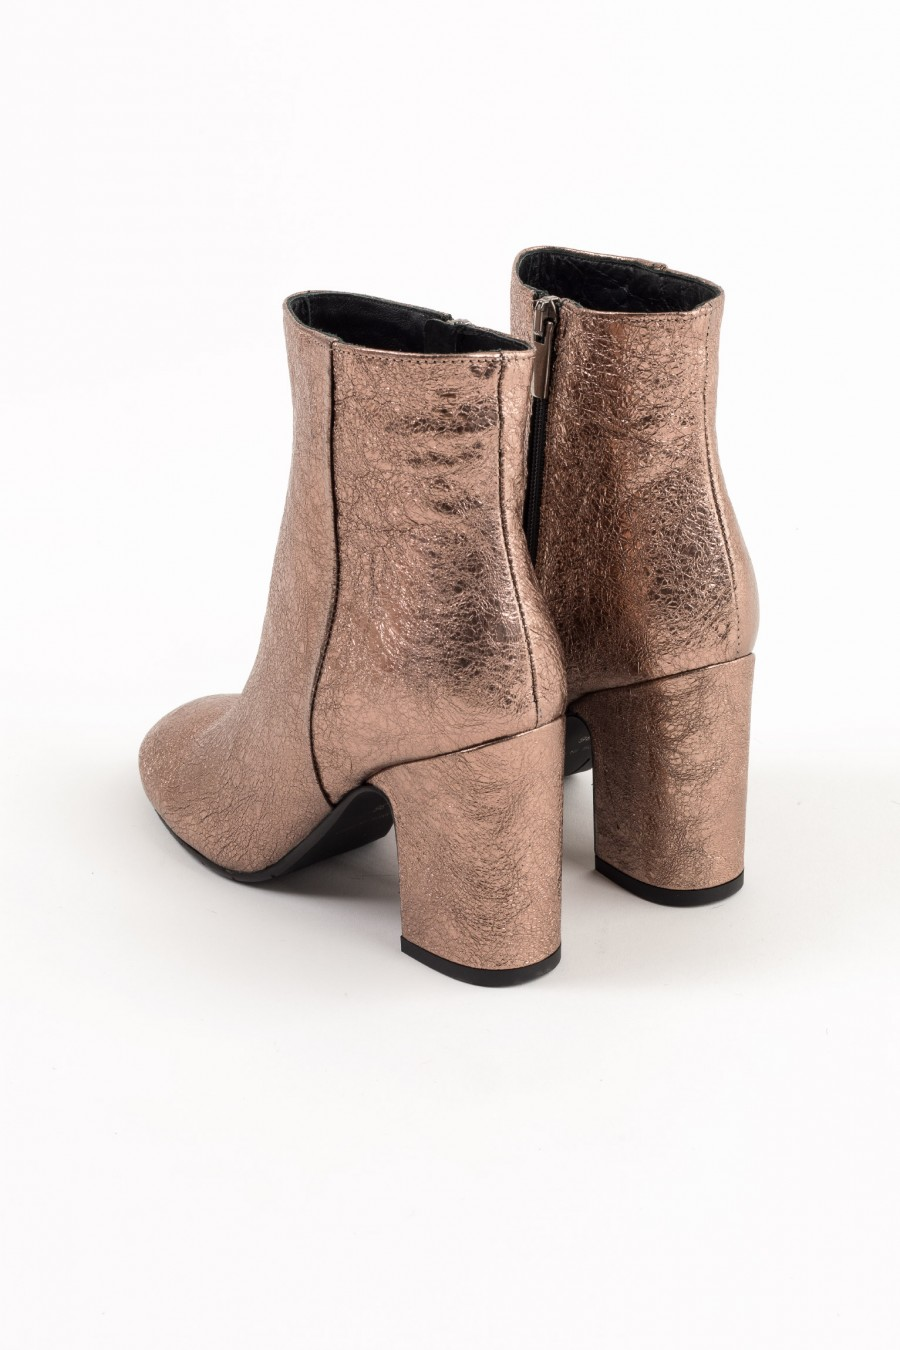 Mid heeled pink metallic leather ankle boots